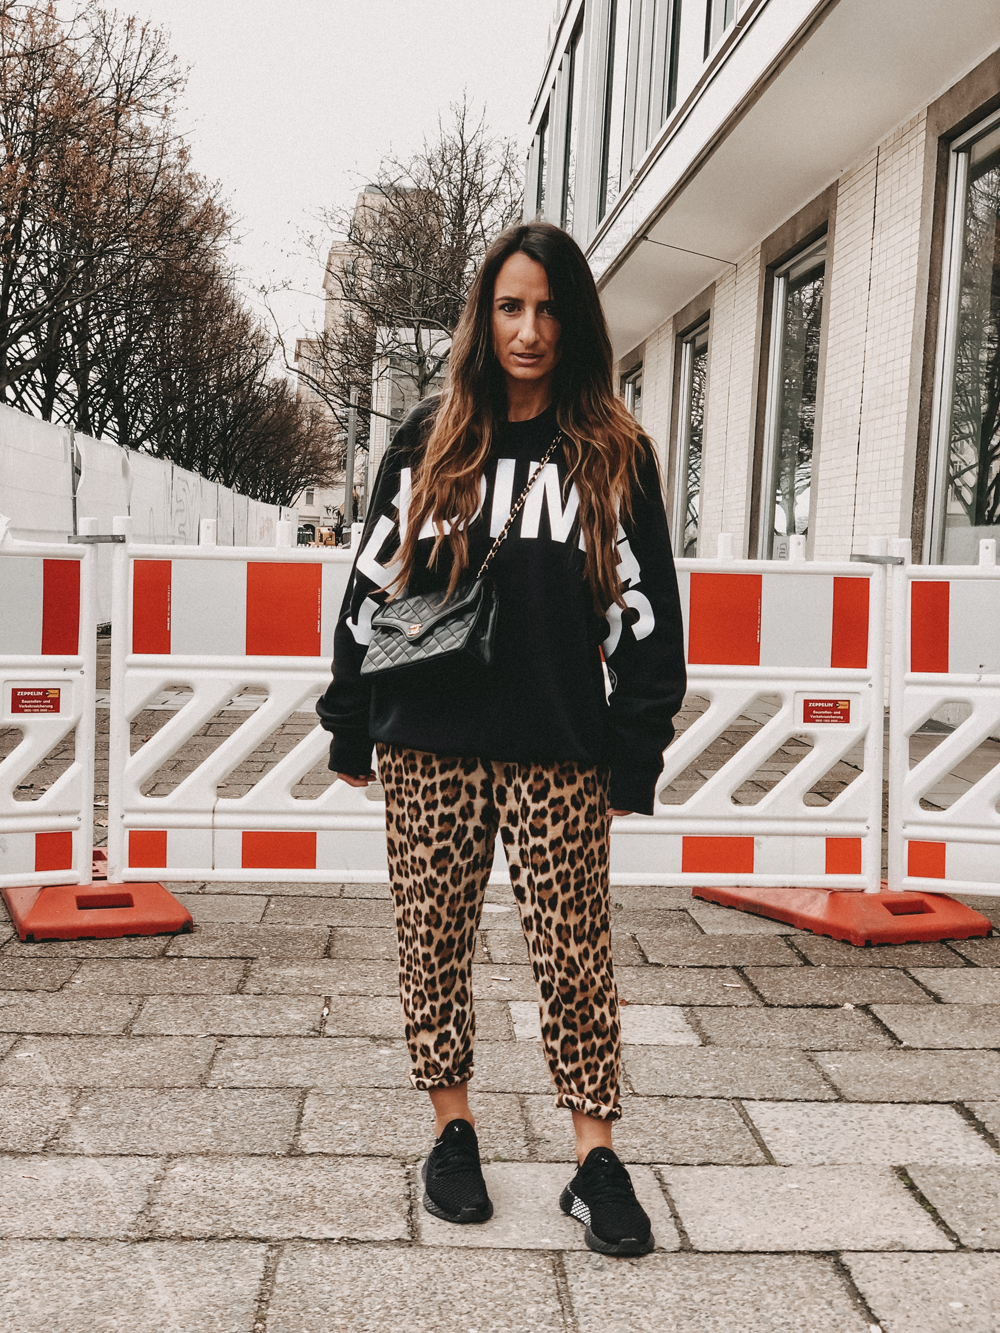 Leo Trackpants x Sweater x Adidas Sneaker – Fashion Week Berlin